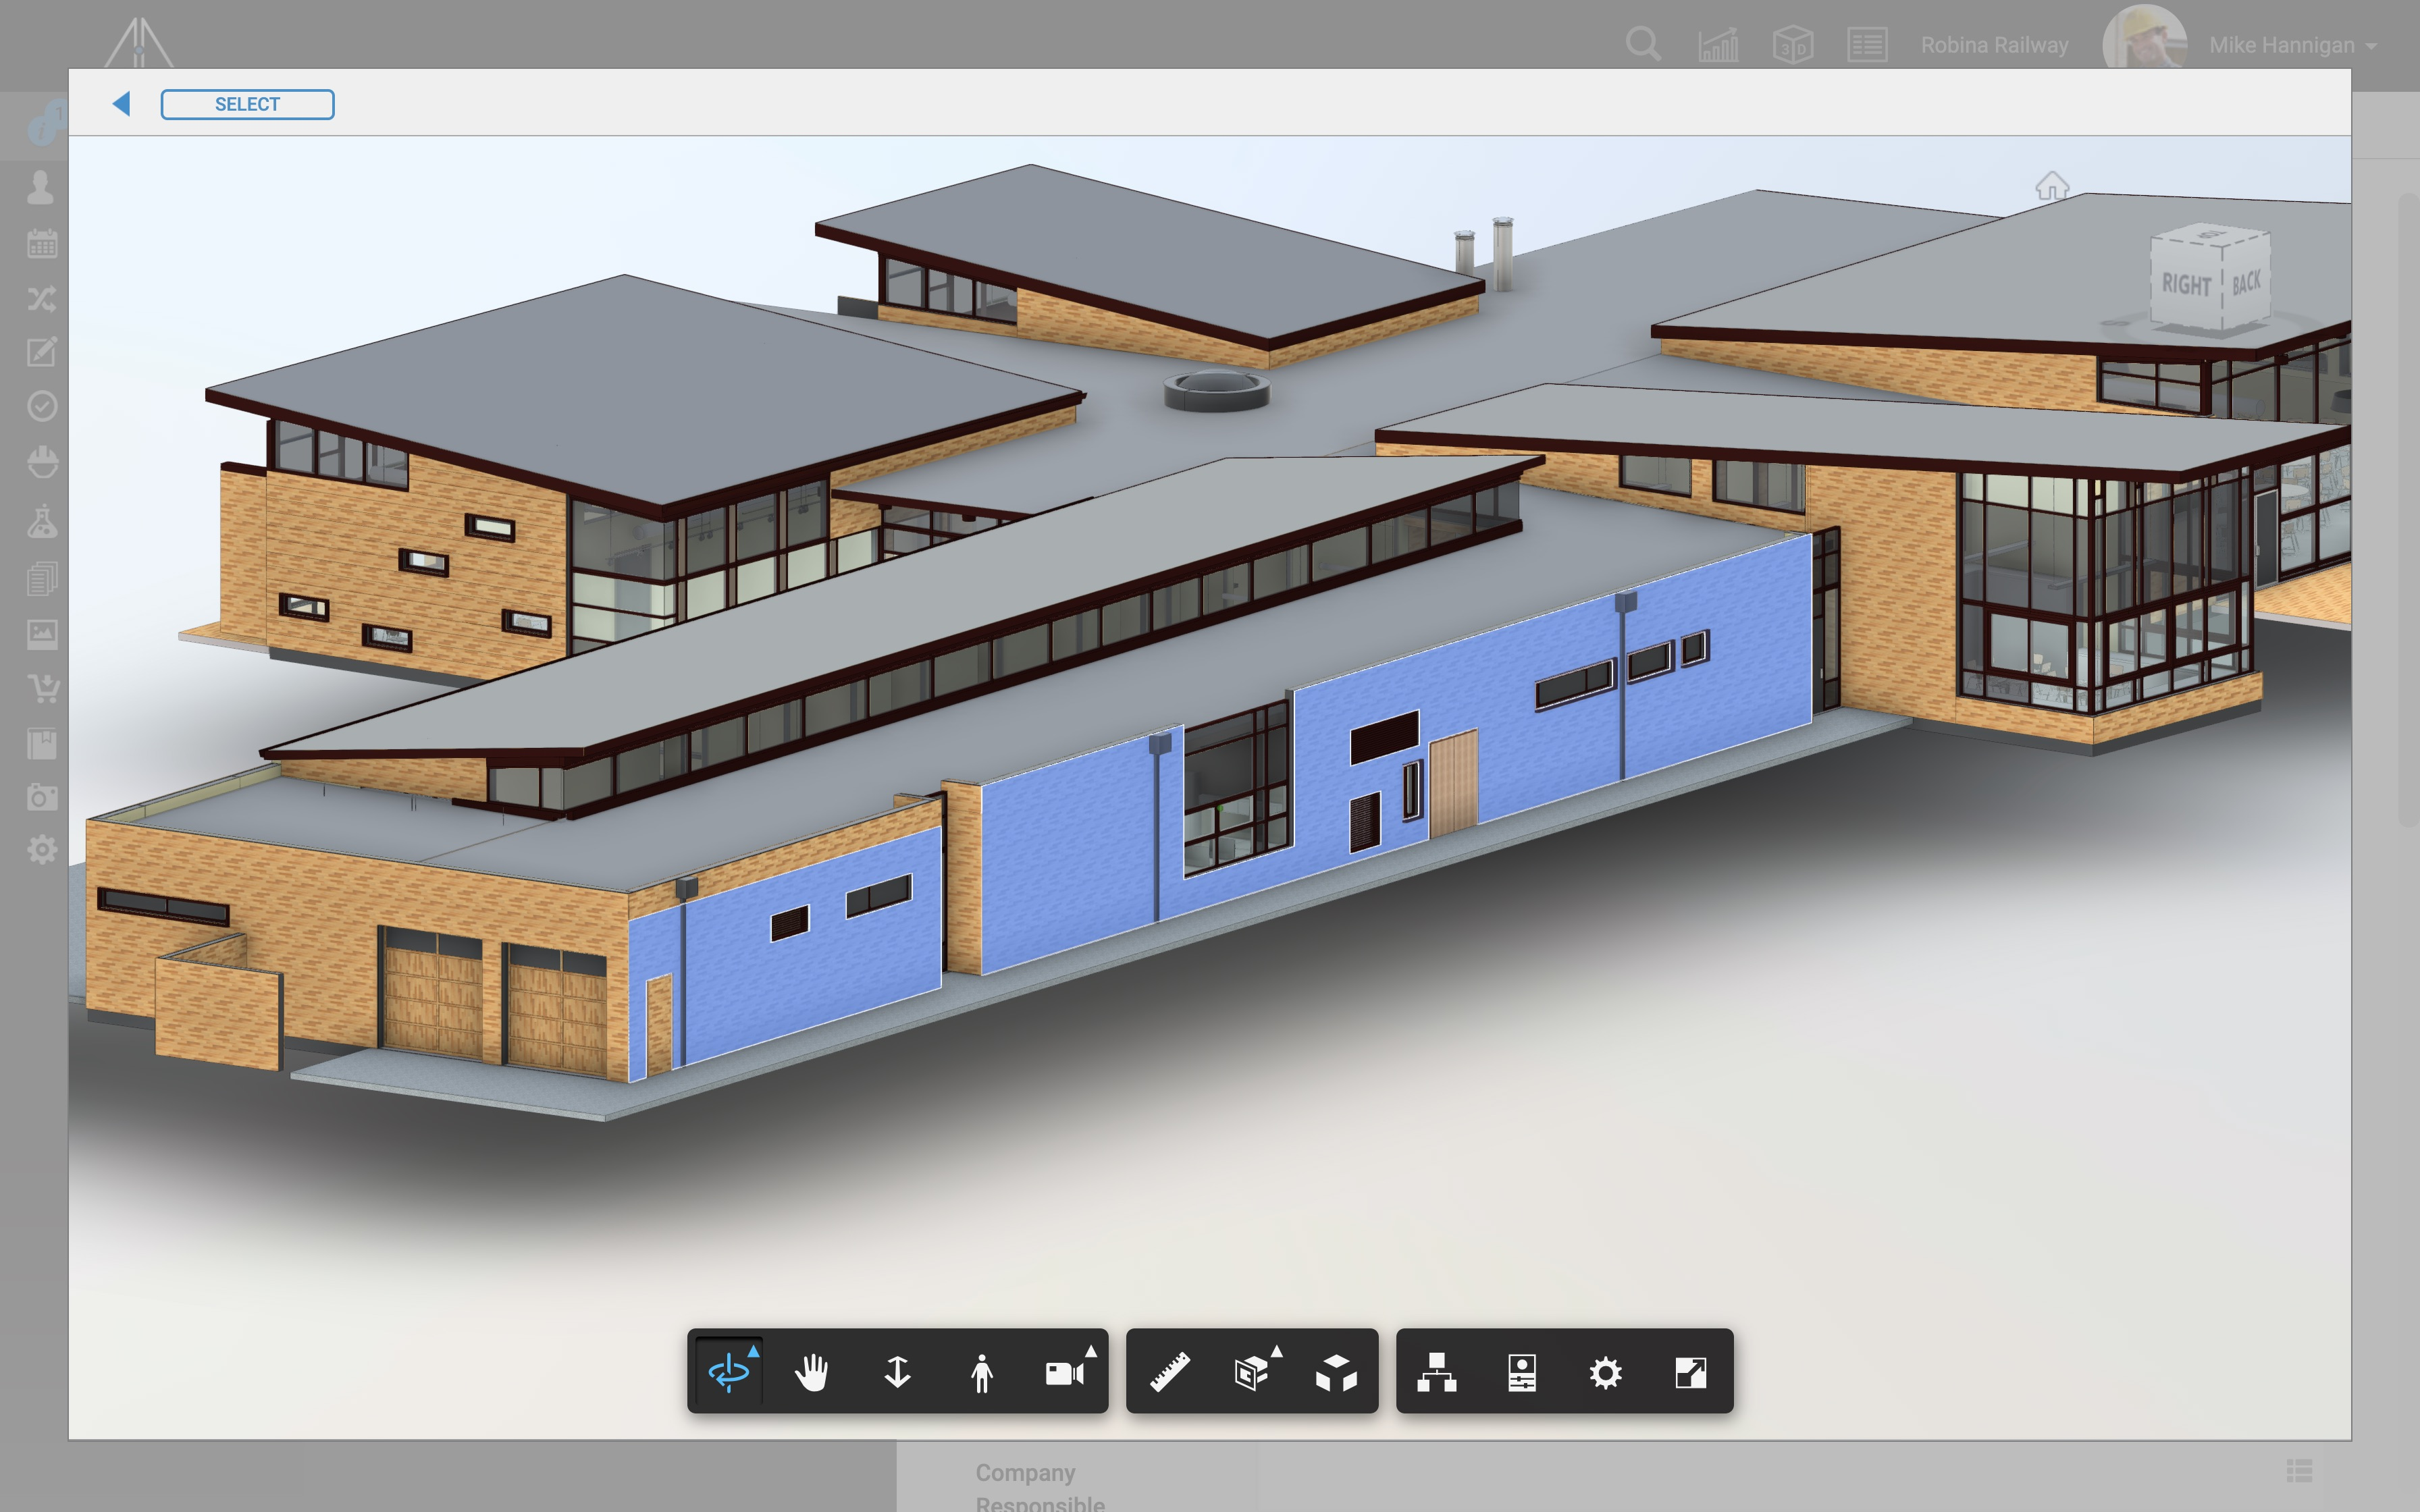 Elements on BIM models can be selected and pinned to Glaass Pro cases